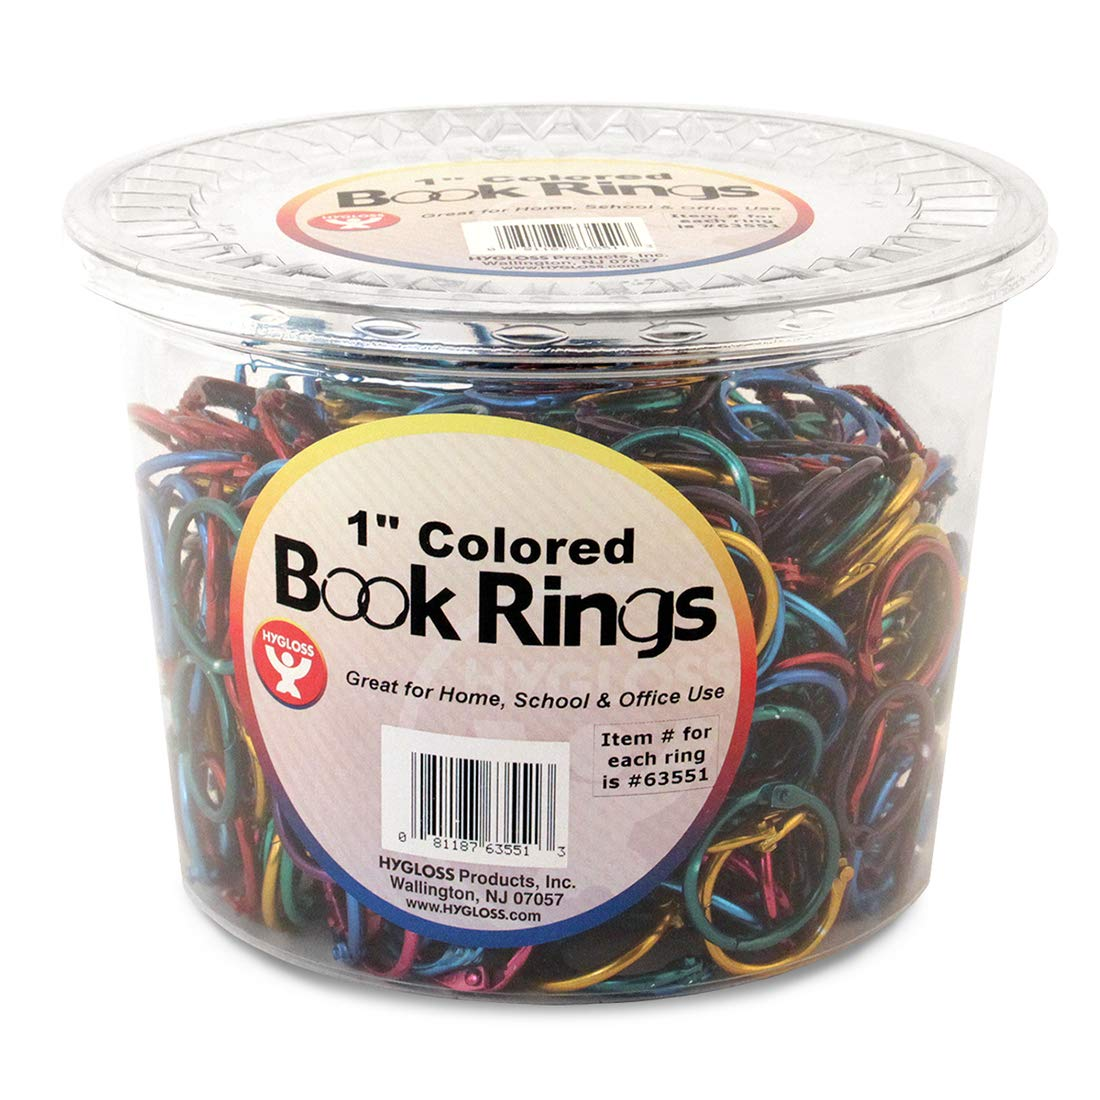 Hygloss Products, Inc Products Book Rings, 1 inch, Assorted Colors by Hygloss